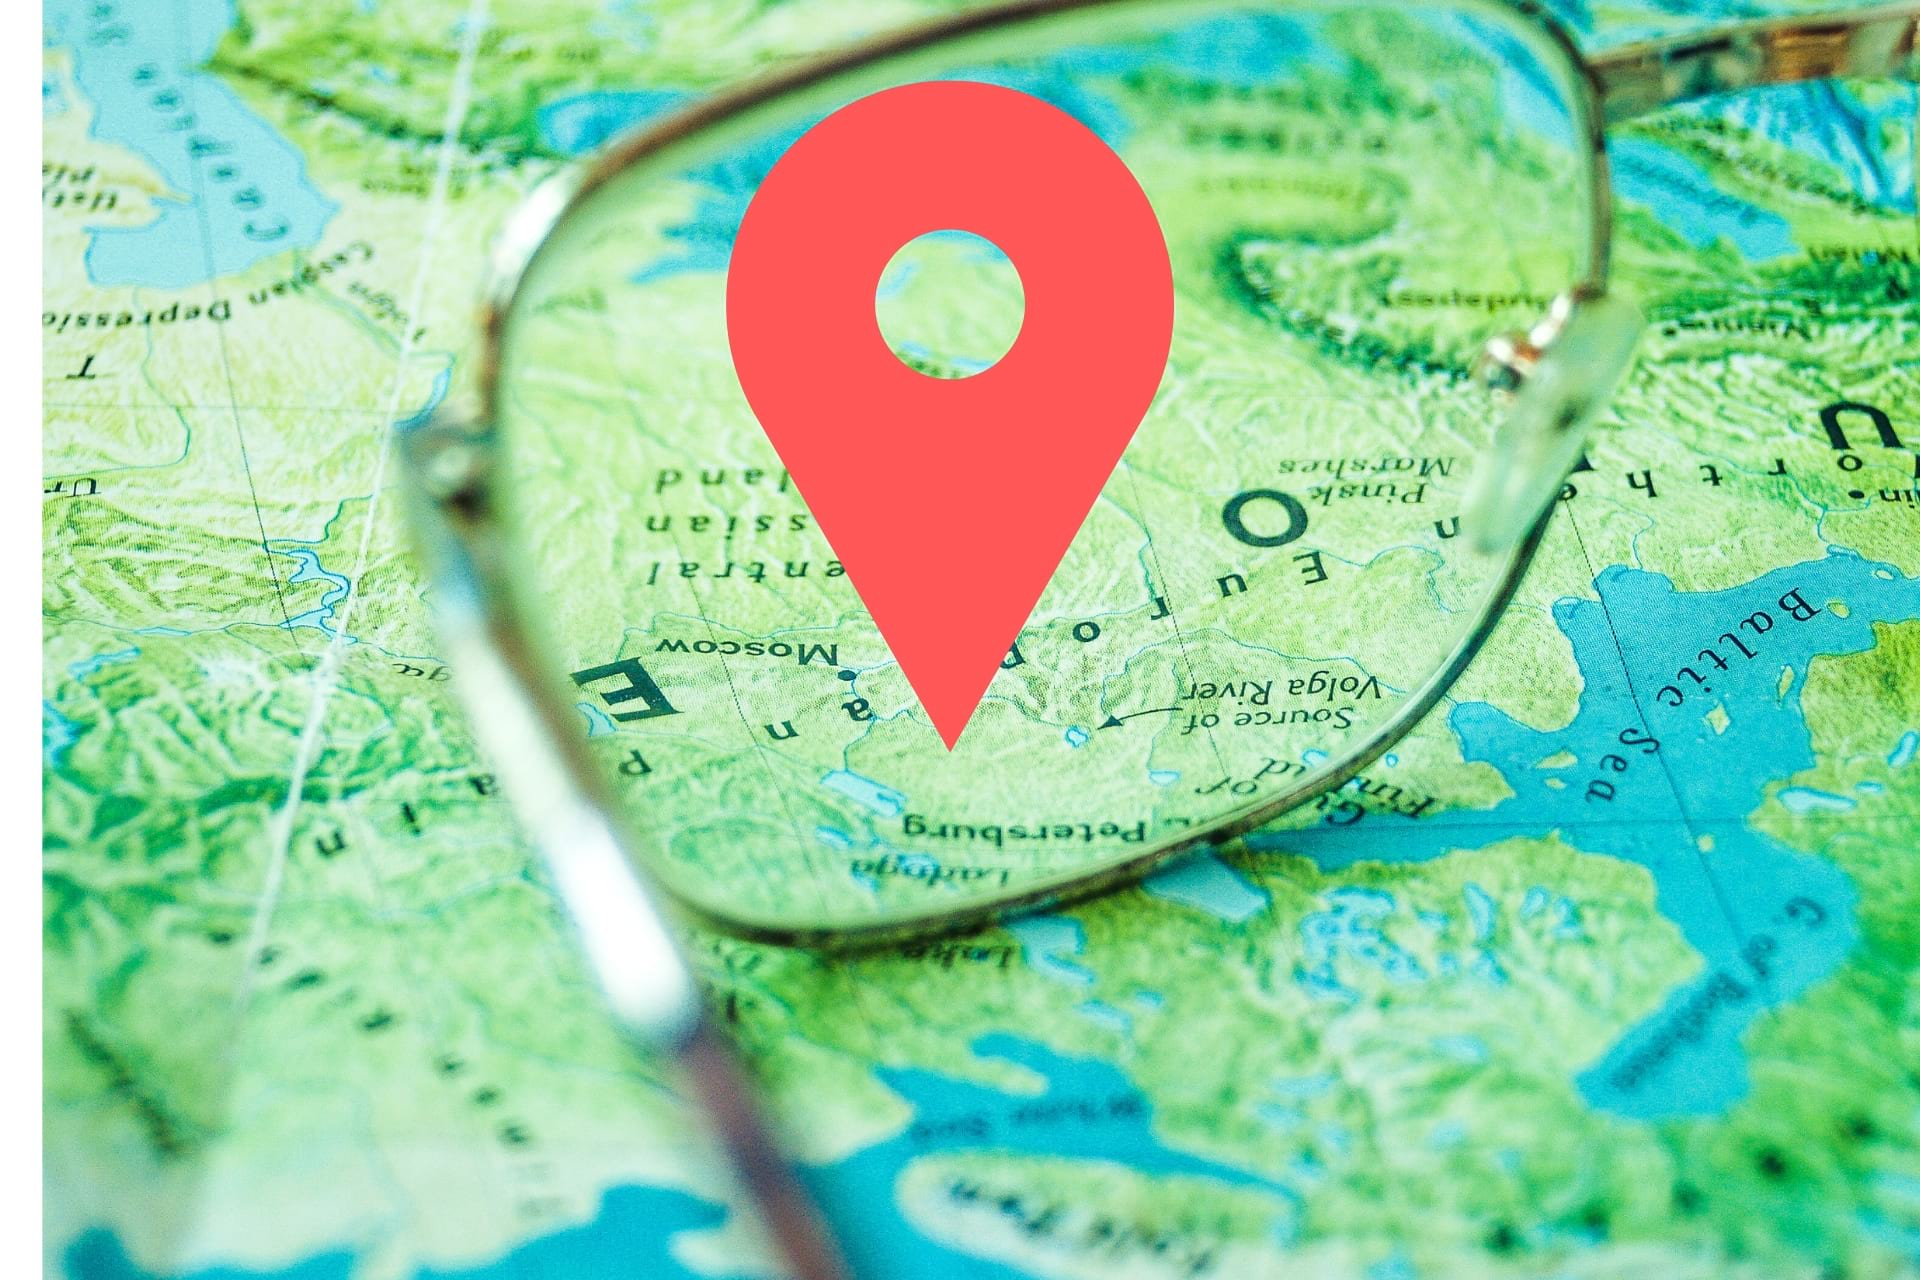 Do 51+ Citations For Any Country Improve Local Search Rankings